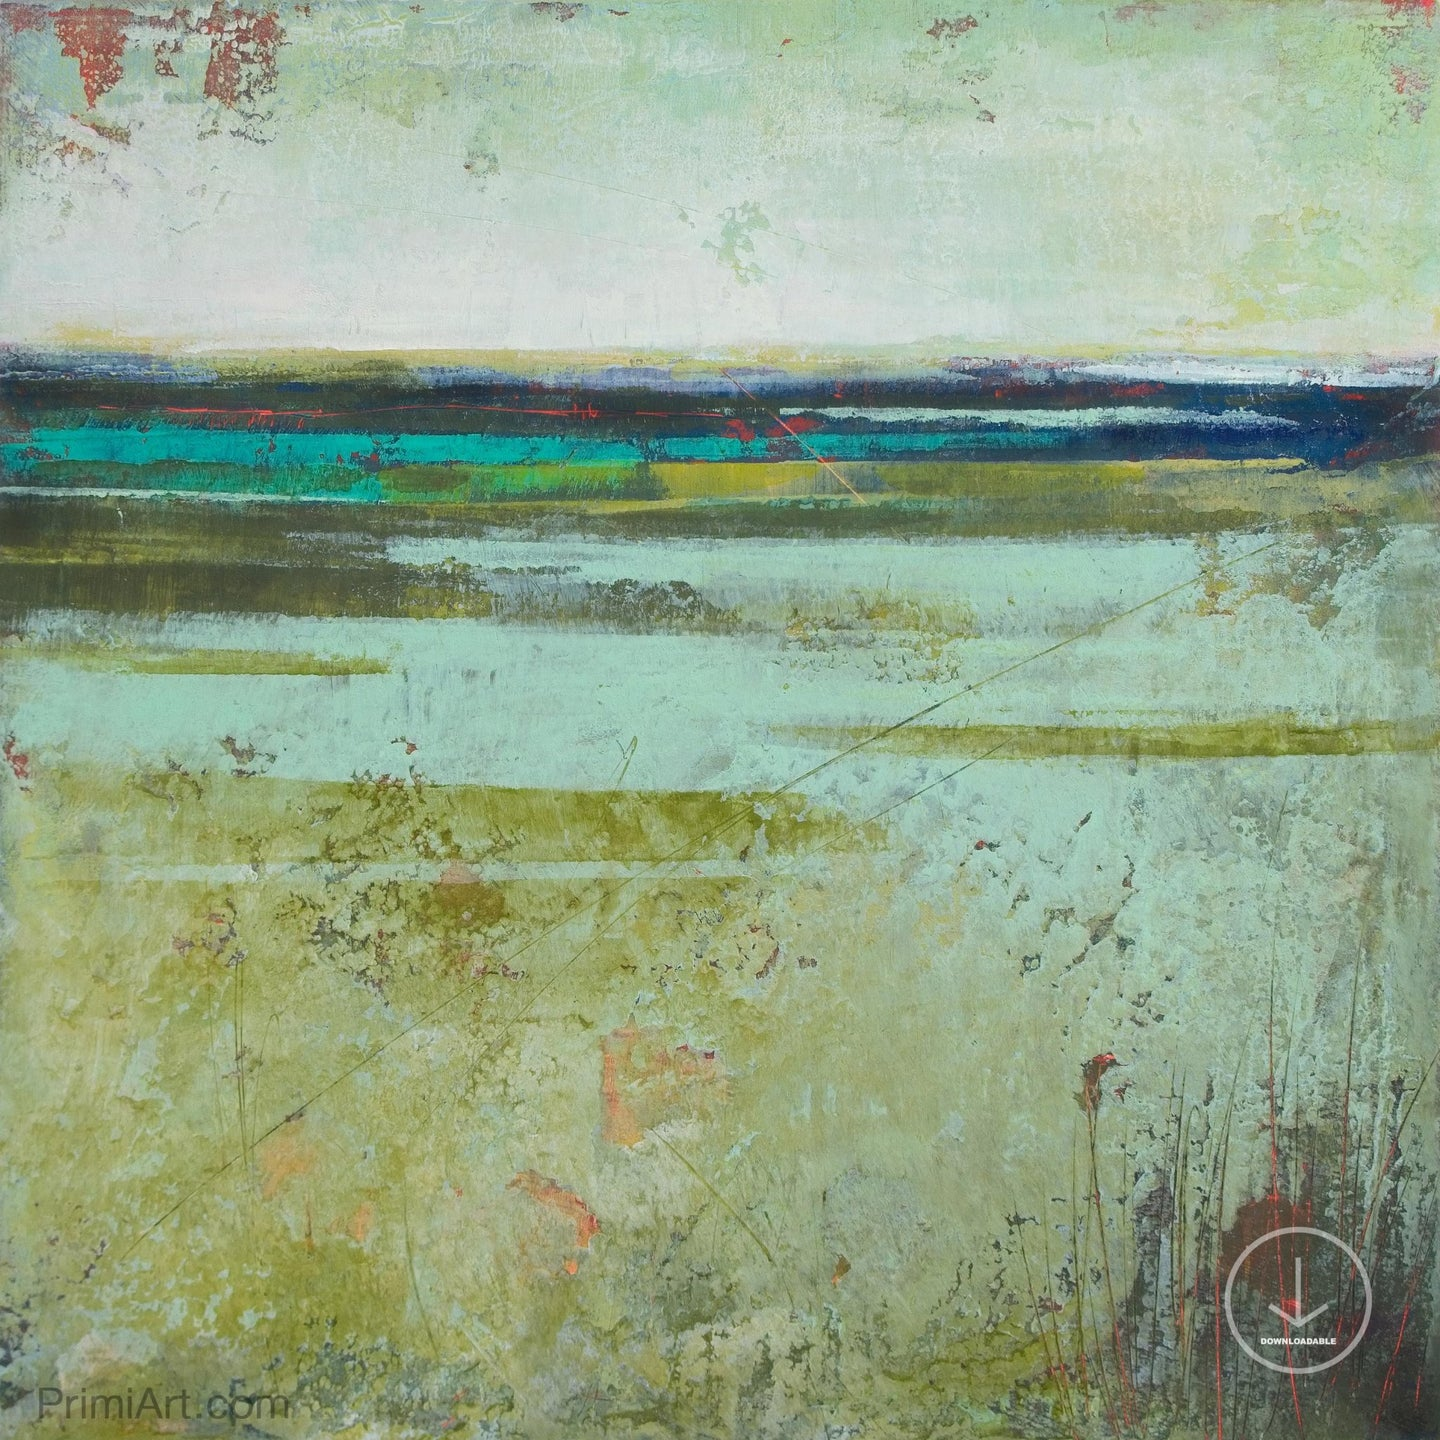 Square contemporary abstract landscape painting